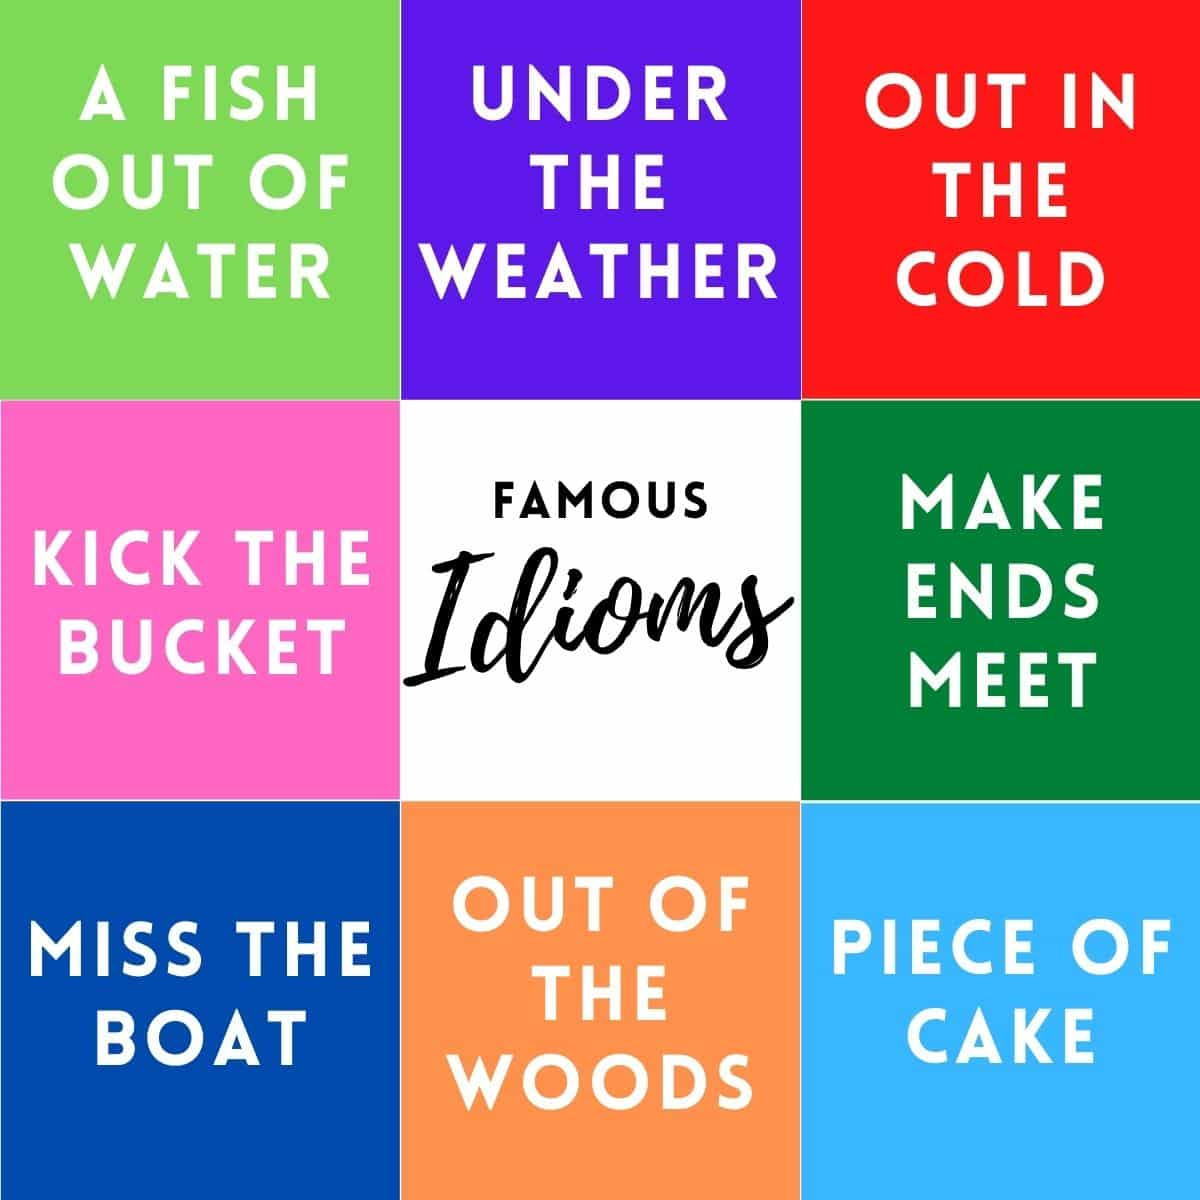 famous idioms include: a fish out of water, under the weather, out in the cold, make ends meet, piece of cake, out of the woods, miss the boat, and kick the bucket